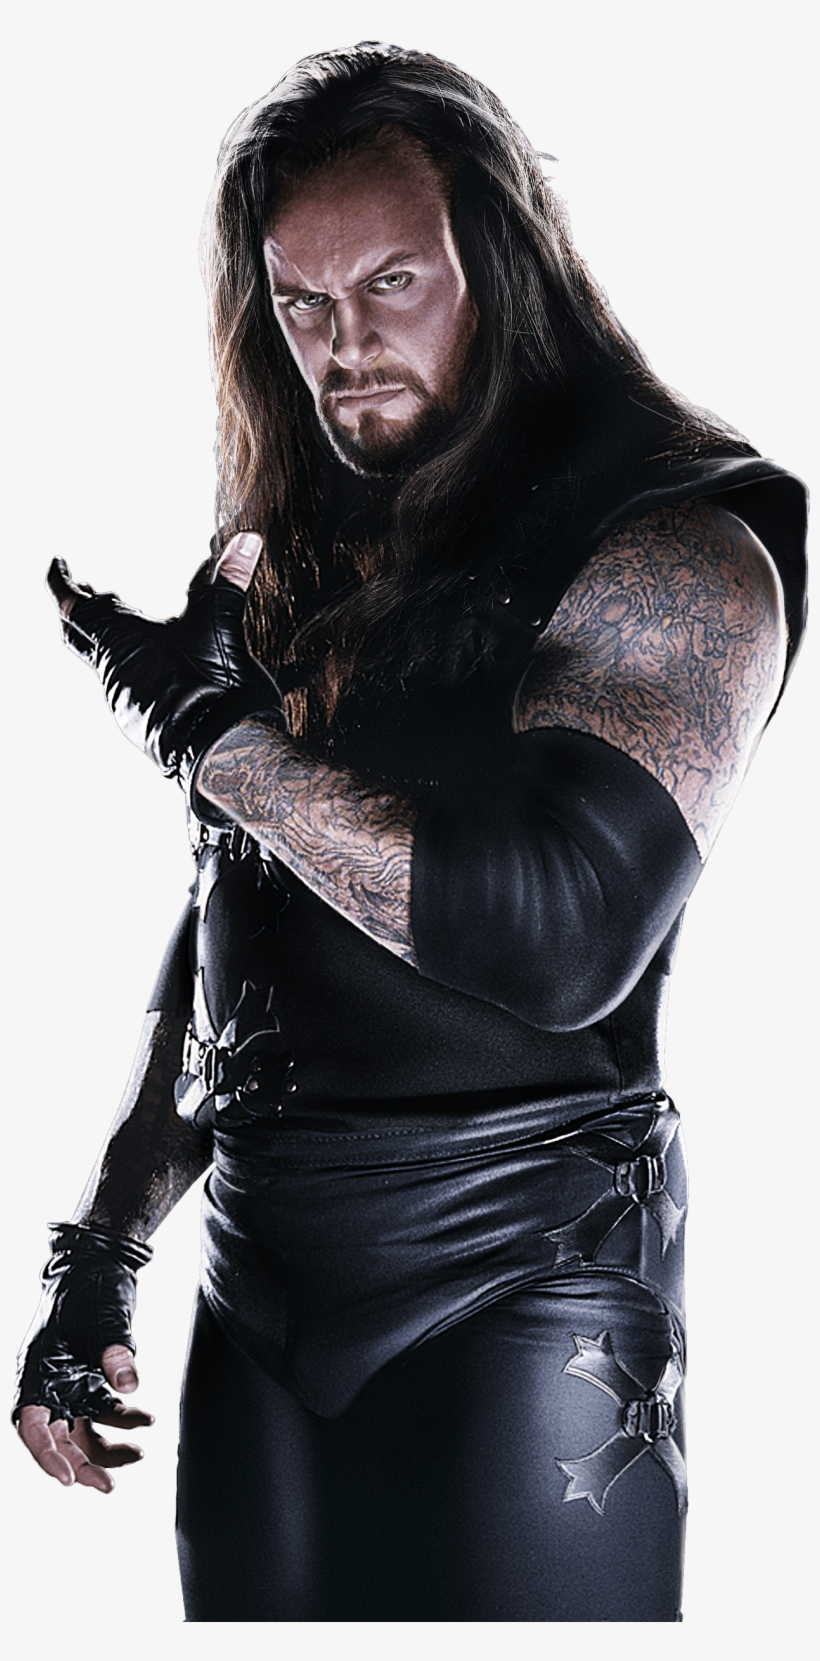 Click To Enlarge - All Wwe Superstars One By One, transparent png #1601840